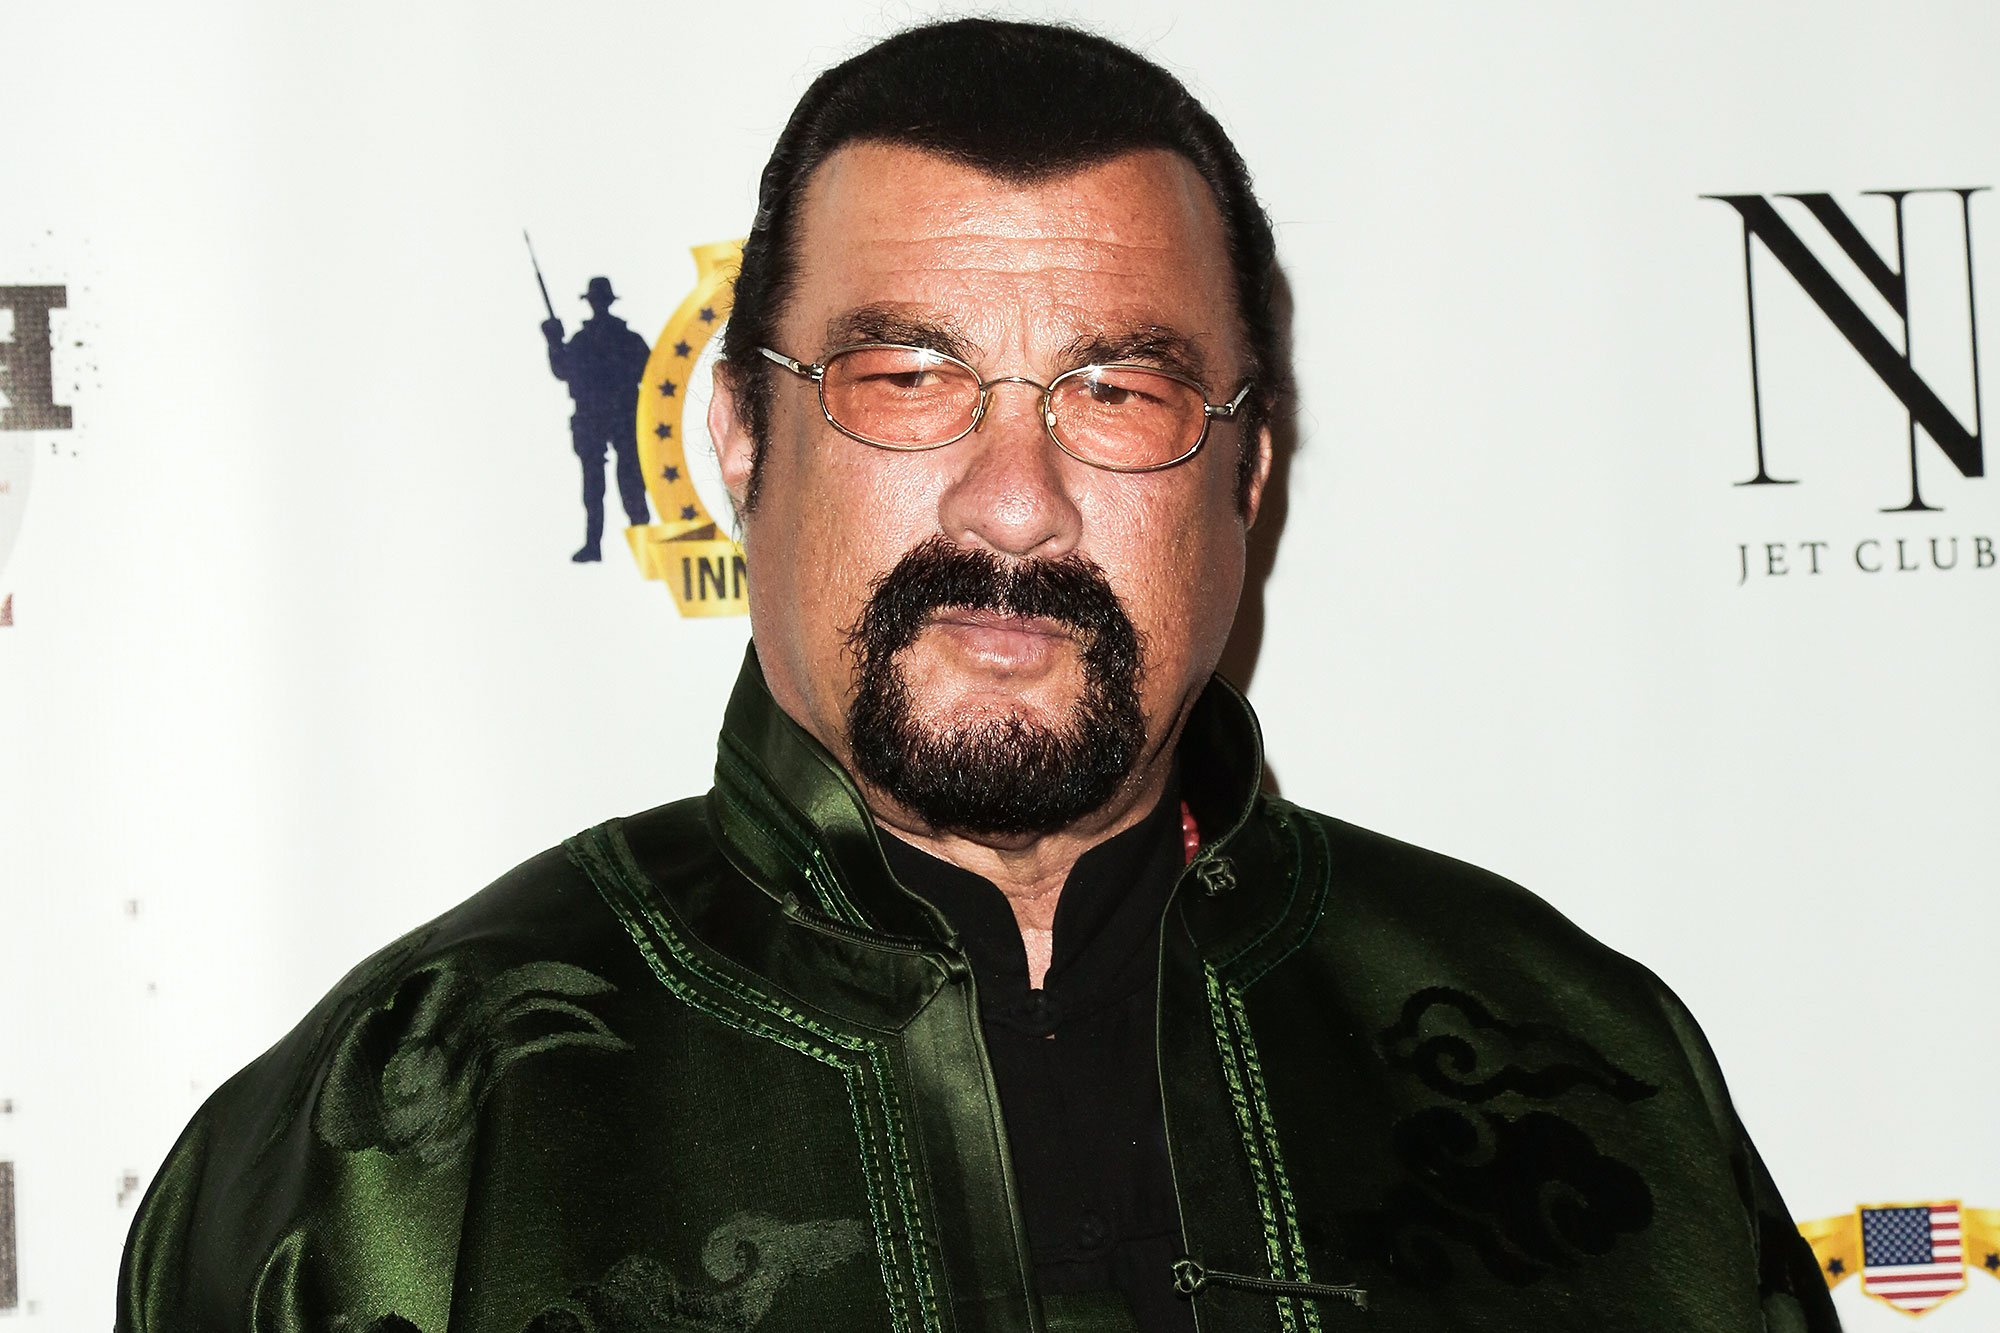 Steven Seagal accused of rape following multiple allegations of sexual misconduct